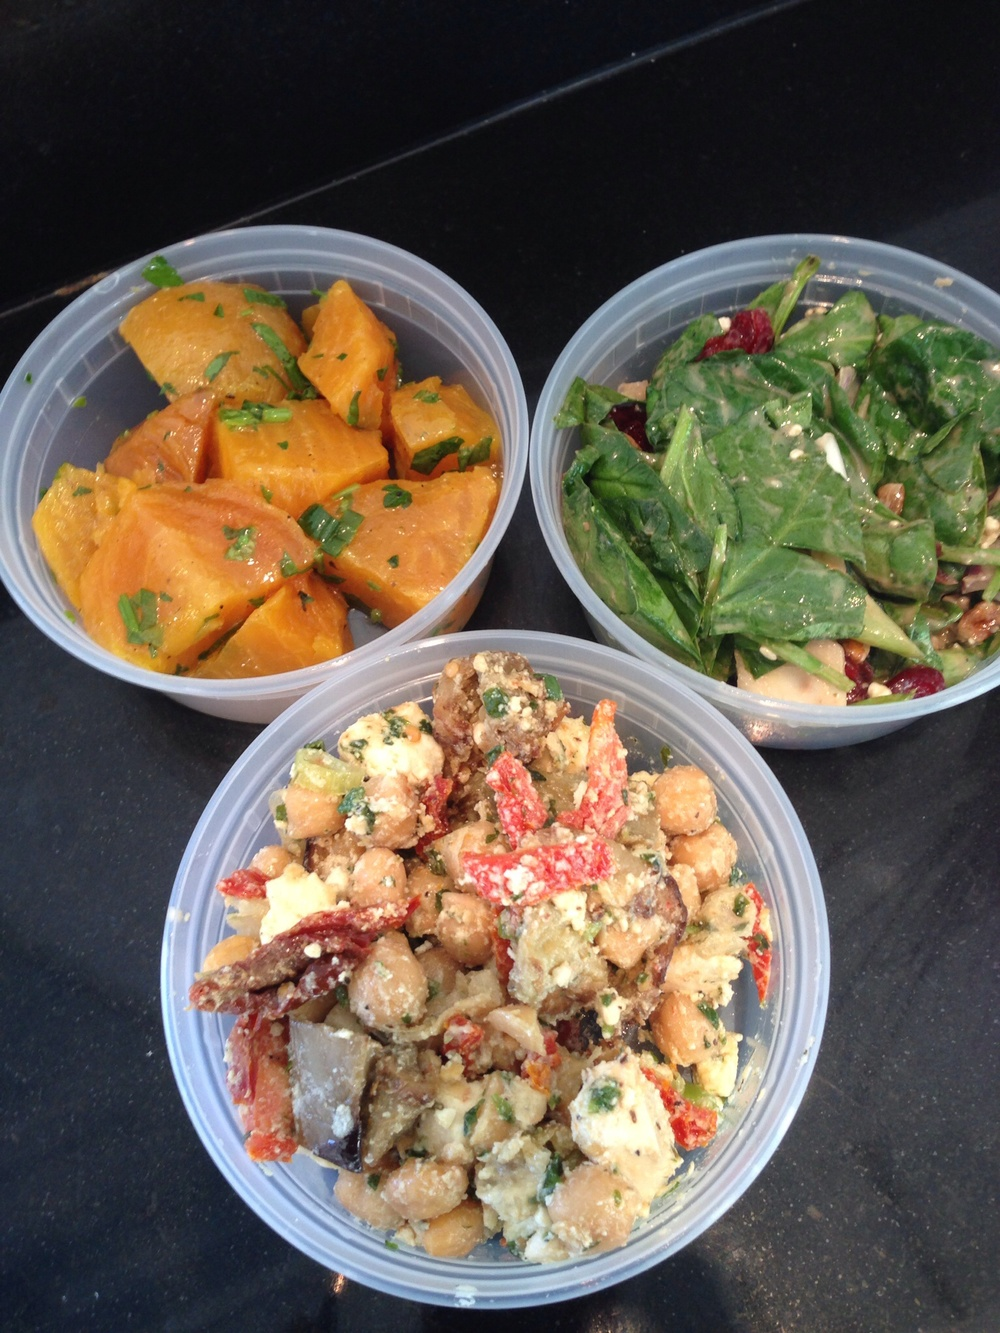 Dean & Deluca Lunch Salads